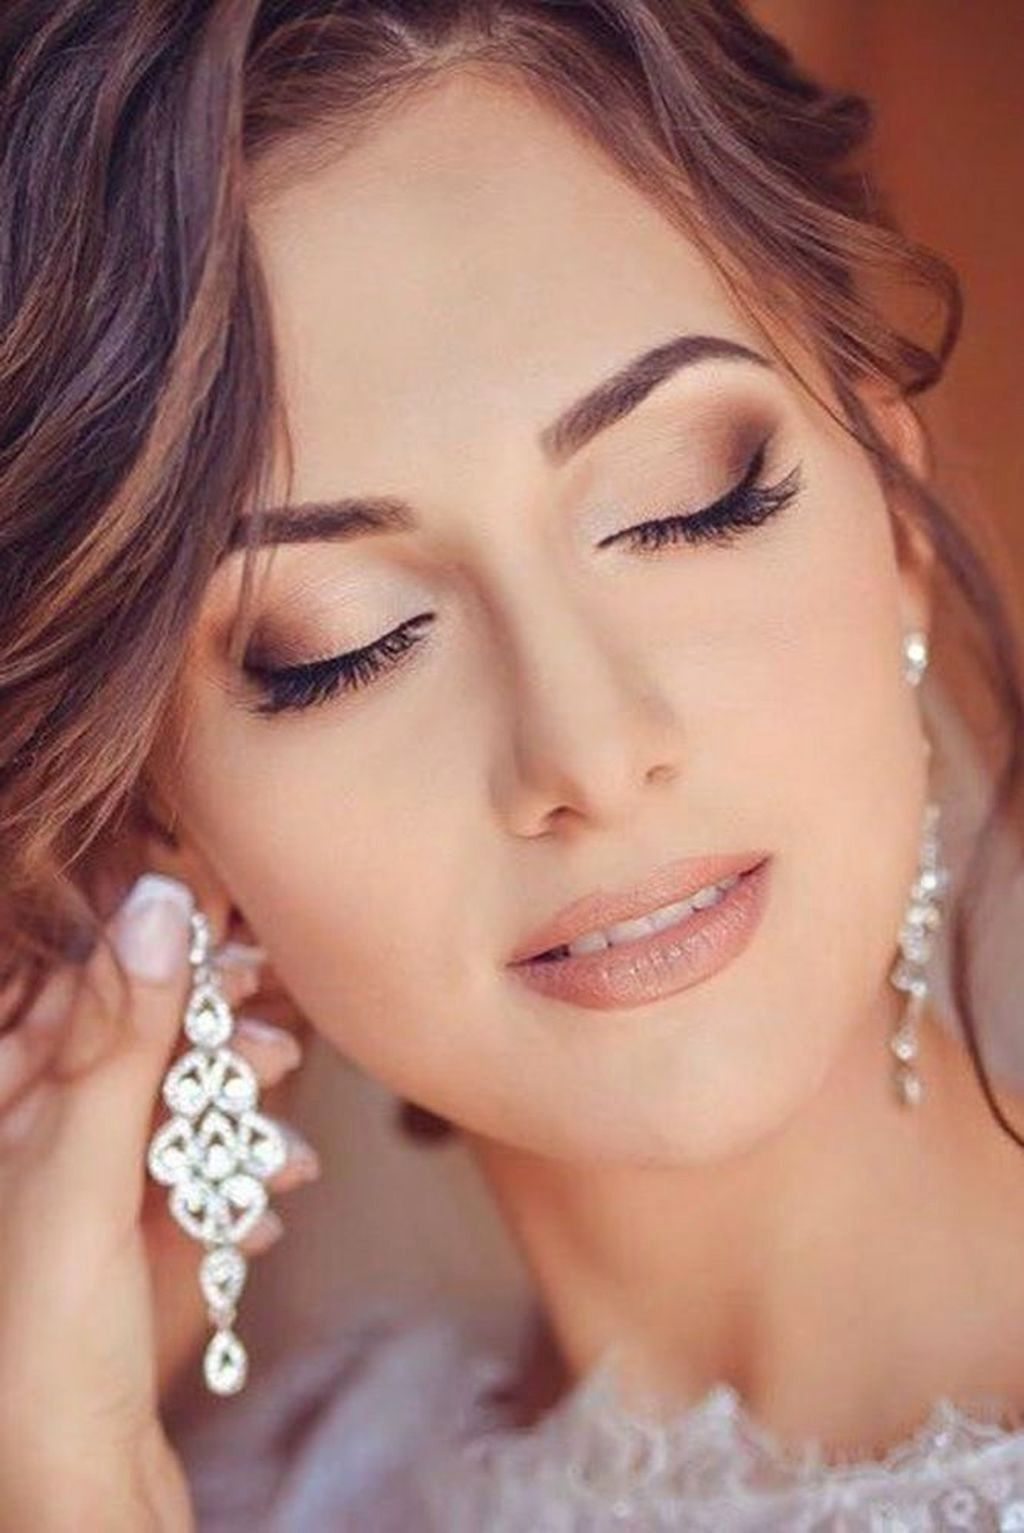 wedding makeup wedding make-up wedding makeup ideas wedding make-up